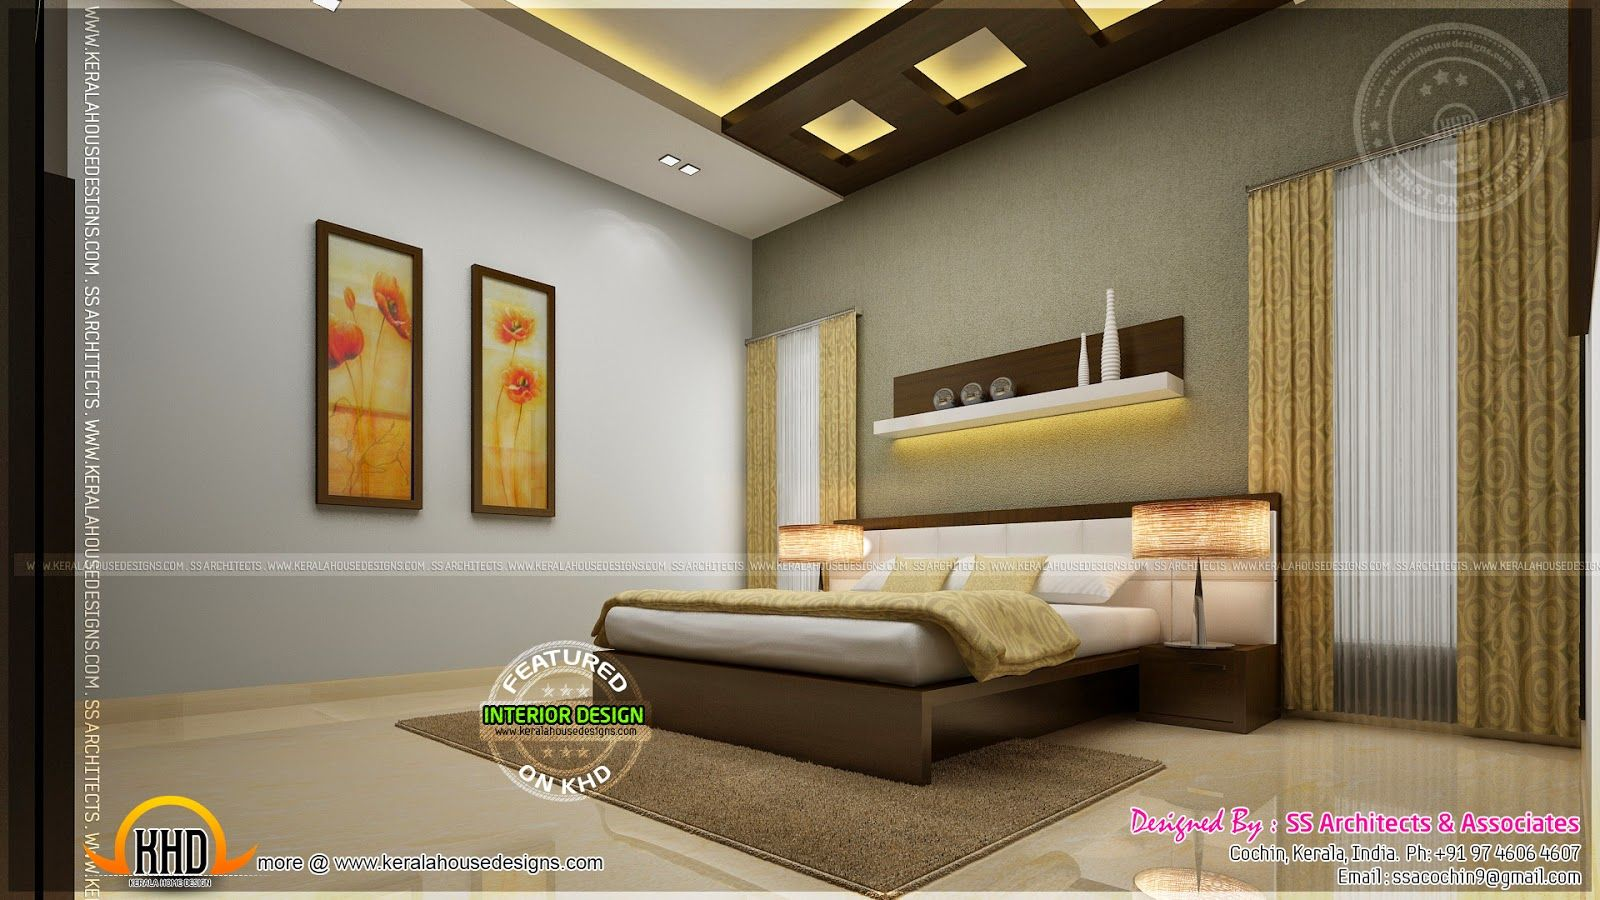 Indian master bedroom interior design google search for Bedroom designs tamilnadu